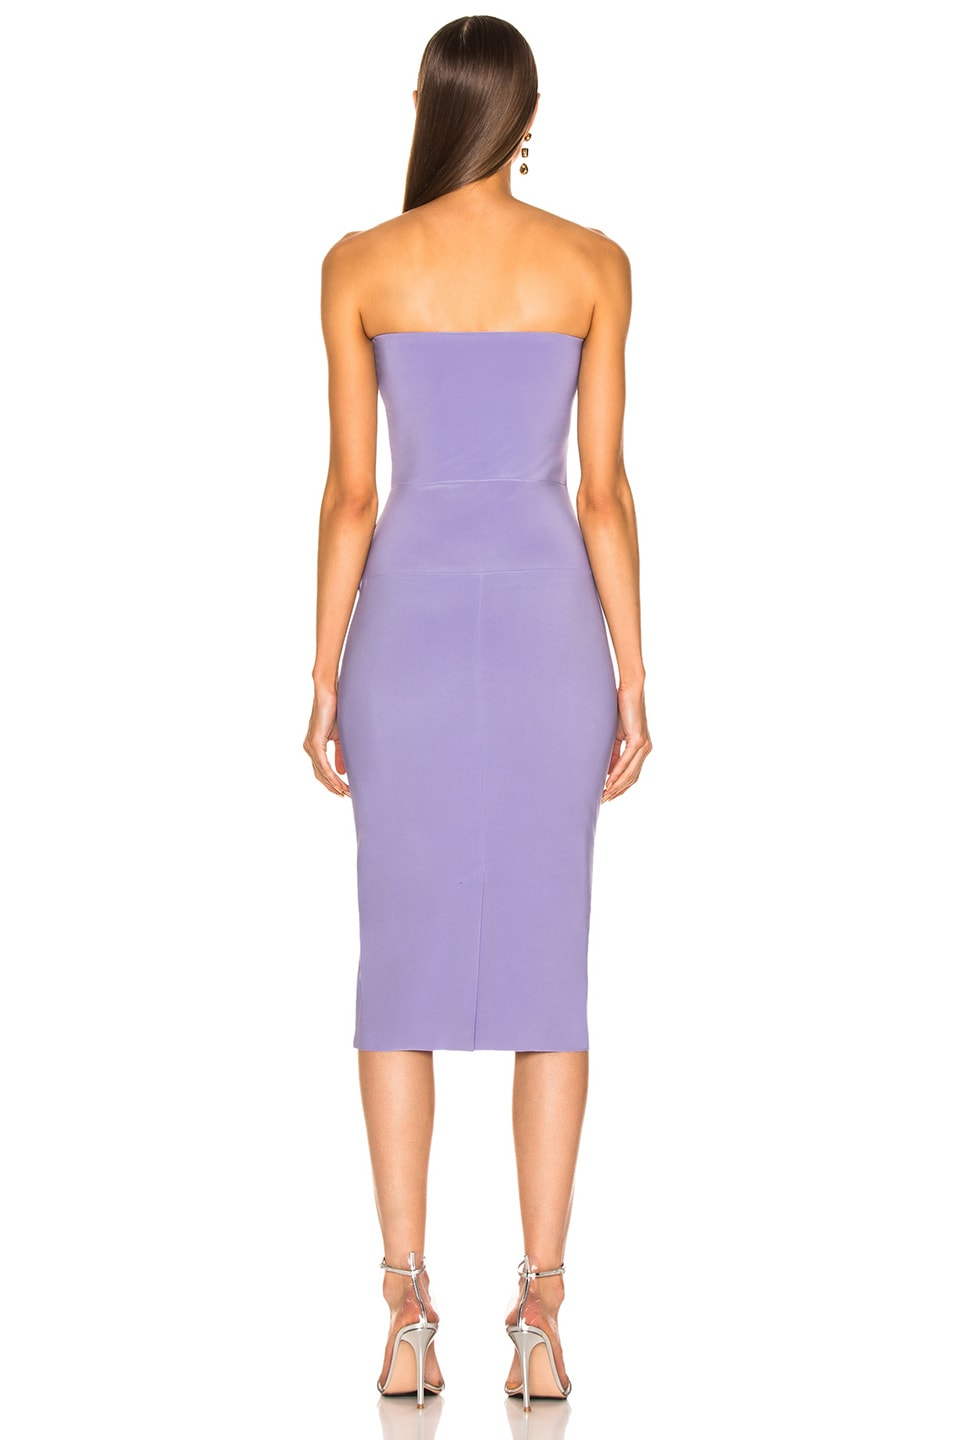 Image 3 of Norma Kamali for FWRD Strapless Dress in Violet